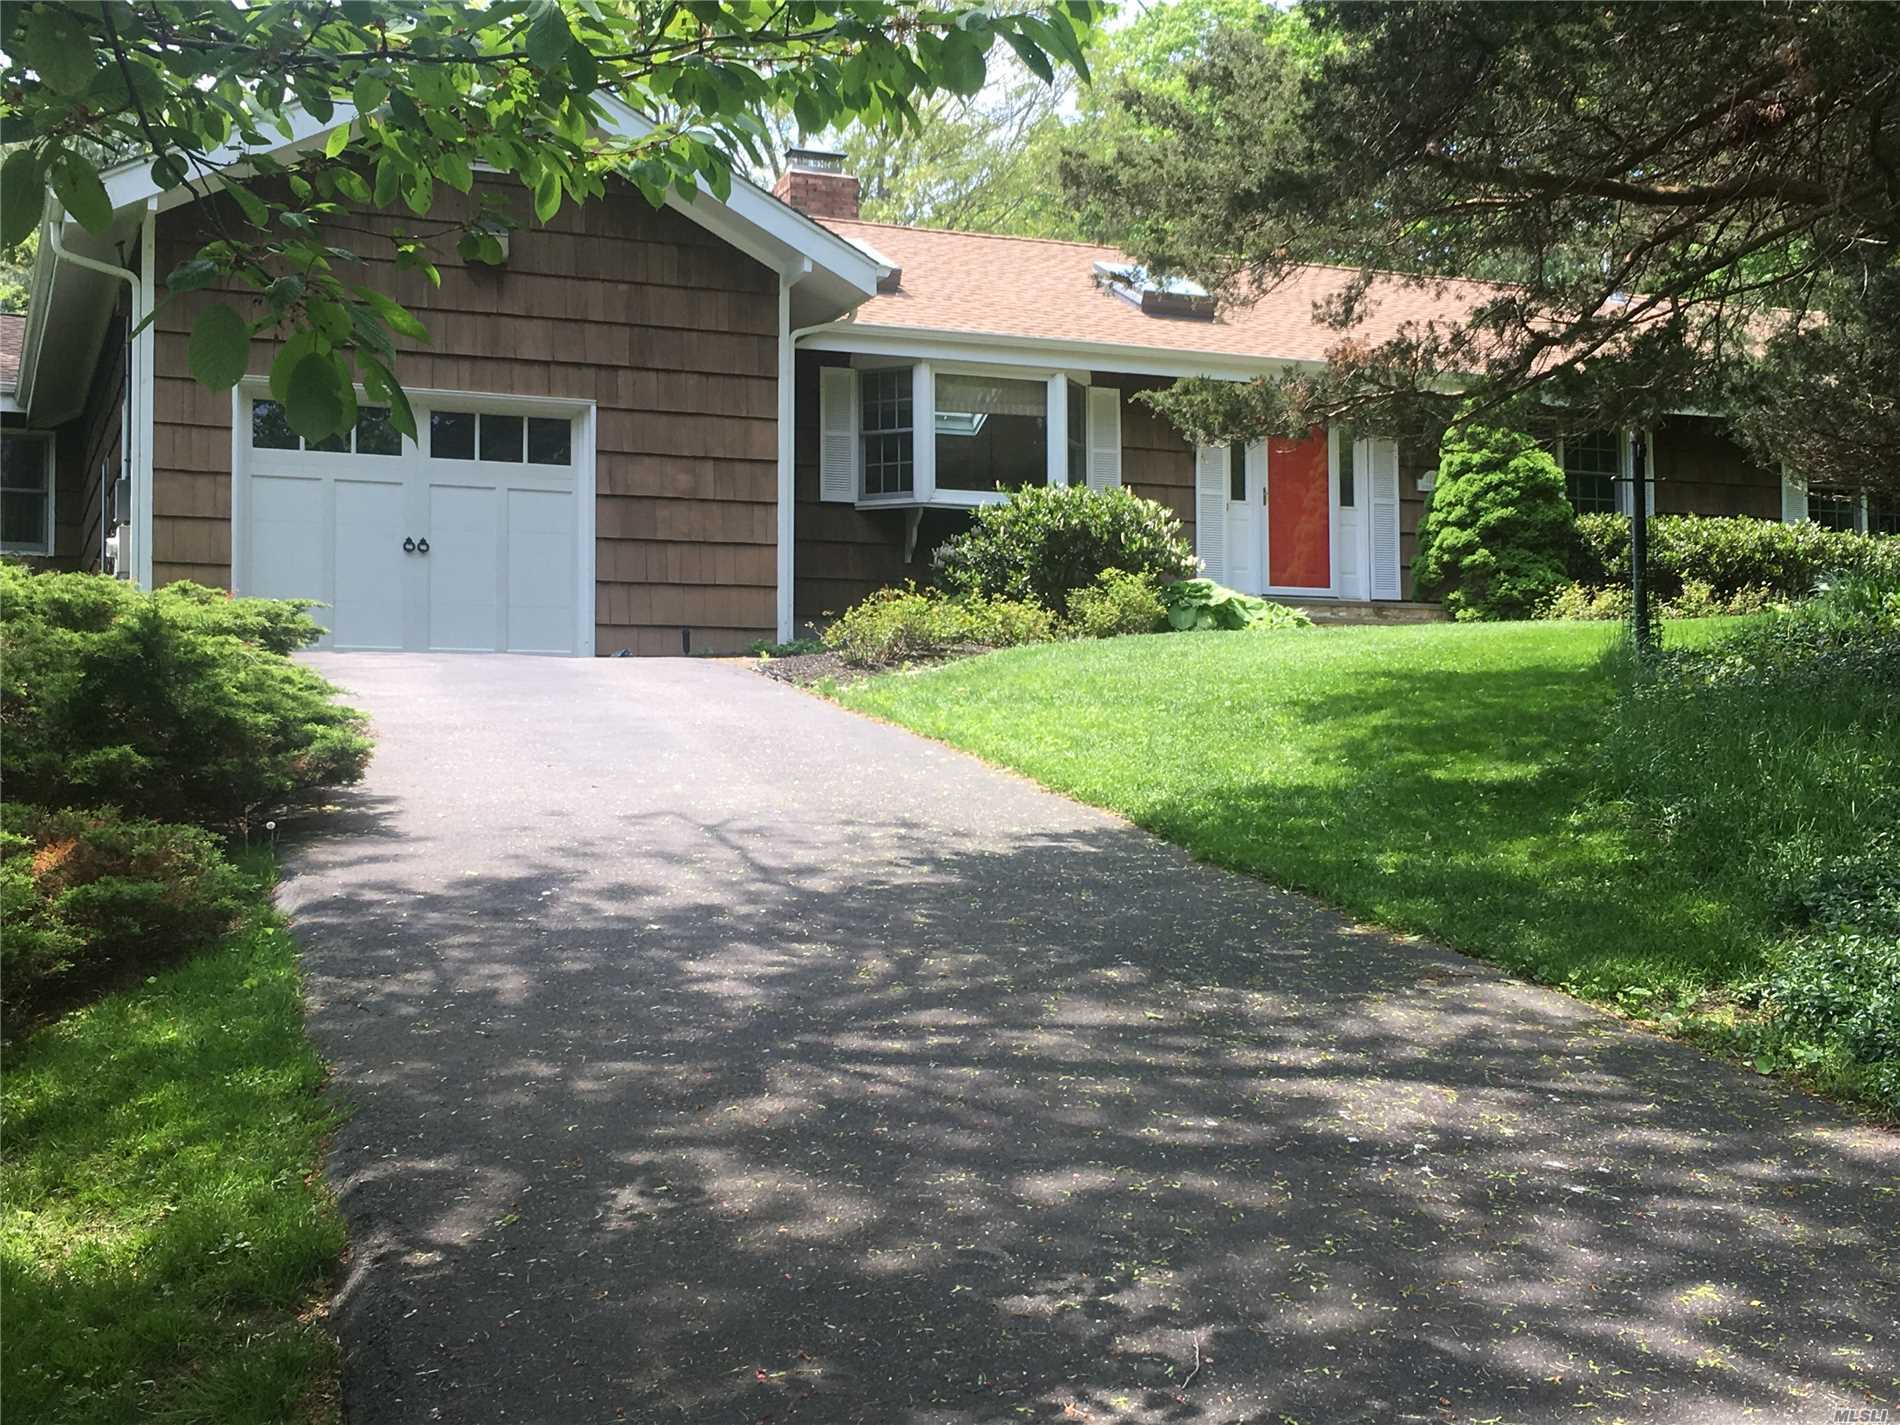 Sprawling 3 Bd, 2 Ba ranch set on a picturesque half acre in Mattituck. Natural light abounds with vaulted ceilings and 10 skylights throughout. Many wonderful features including Wood floors, SS appliances, central air, solar panels, and 2 new bathrooms. Beautifully manicured, fully fenced backyard with pond and gazebo. Room For A Pool. Conveniently located to Breakwater Beach with deeded creek access on Mattituck Inlet. Enjoy all the North Fork has to offer from this prime location.